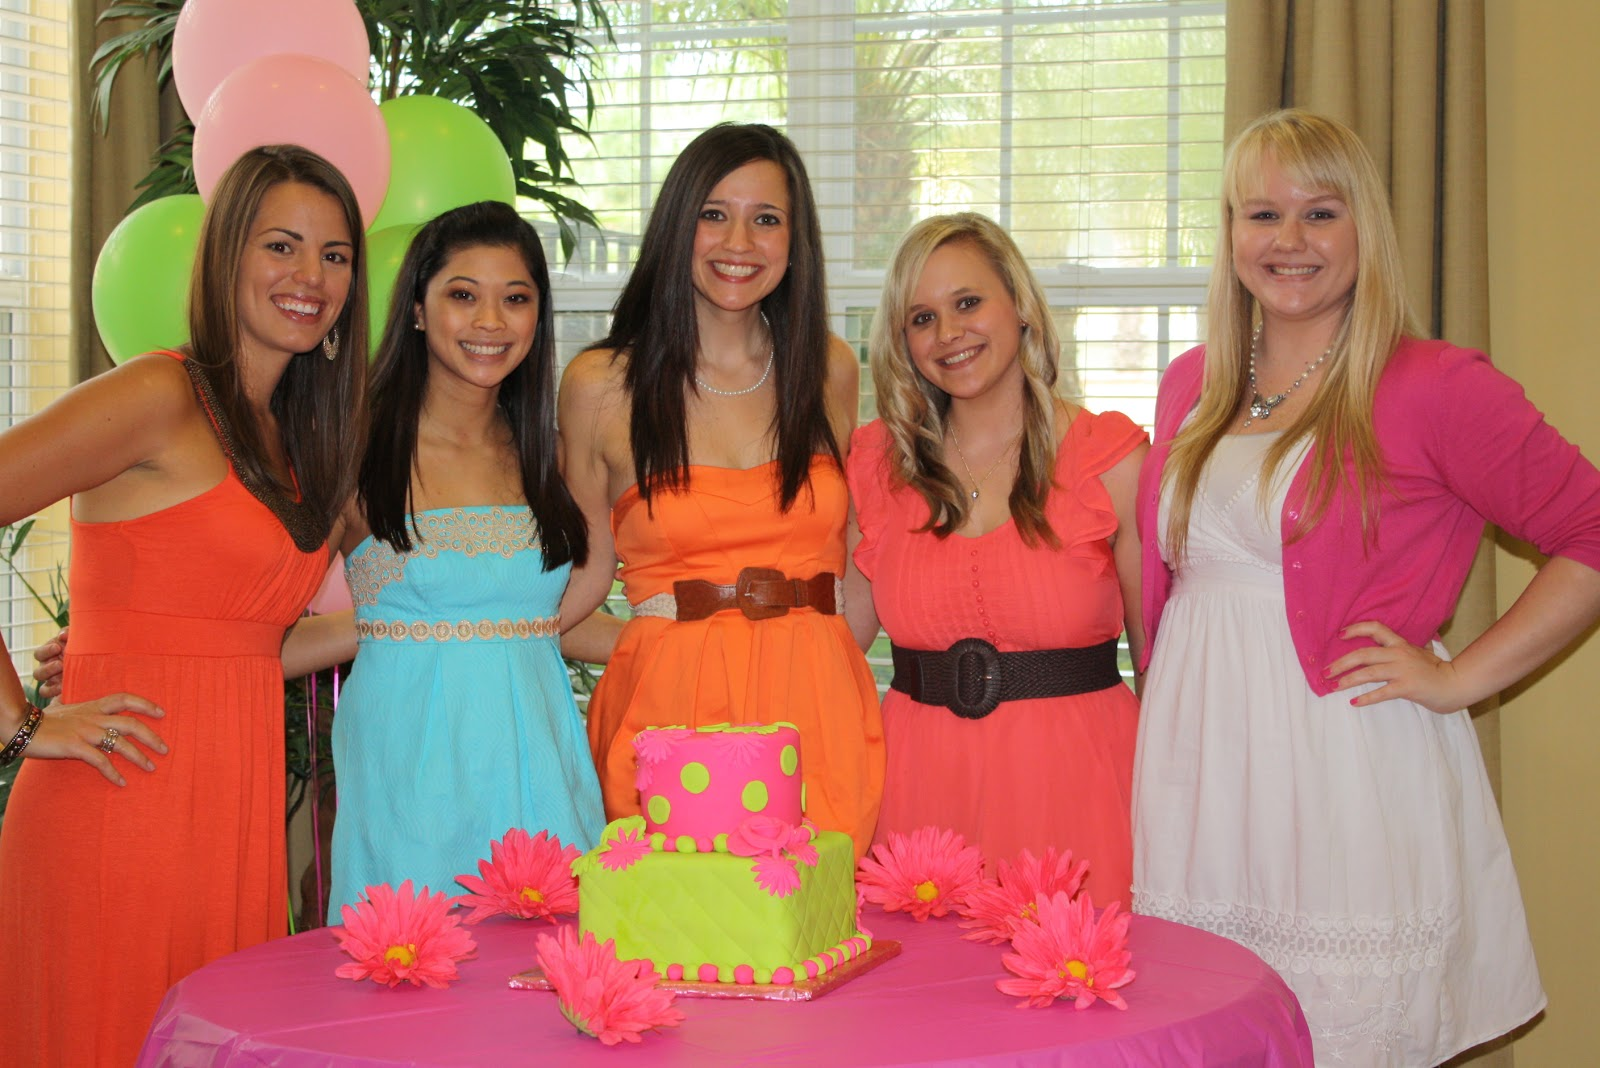 saturday my lovely future sisters and florida bridesmaids threw me an amazing bridal shower the decorations food games and company were simply fabulous